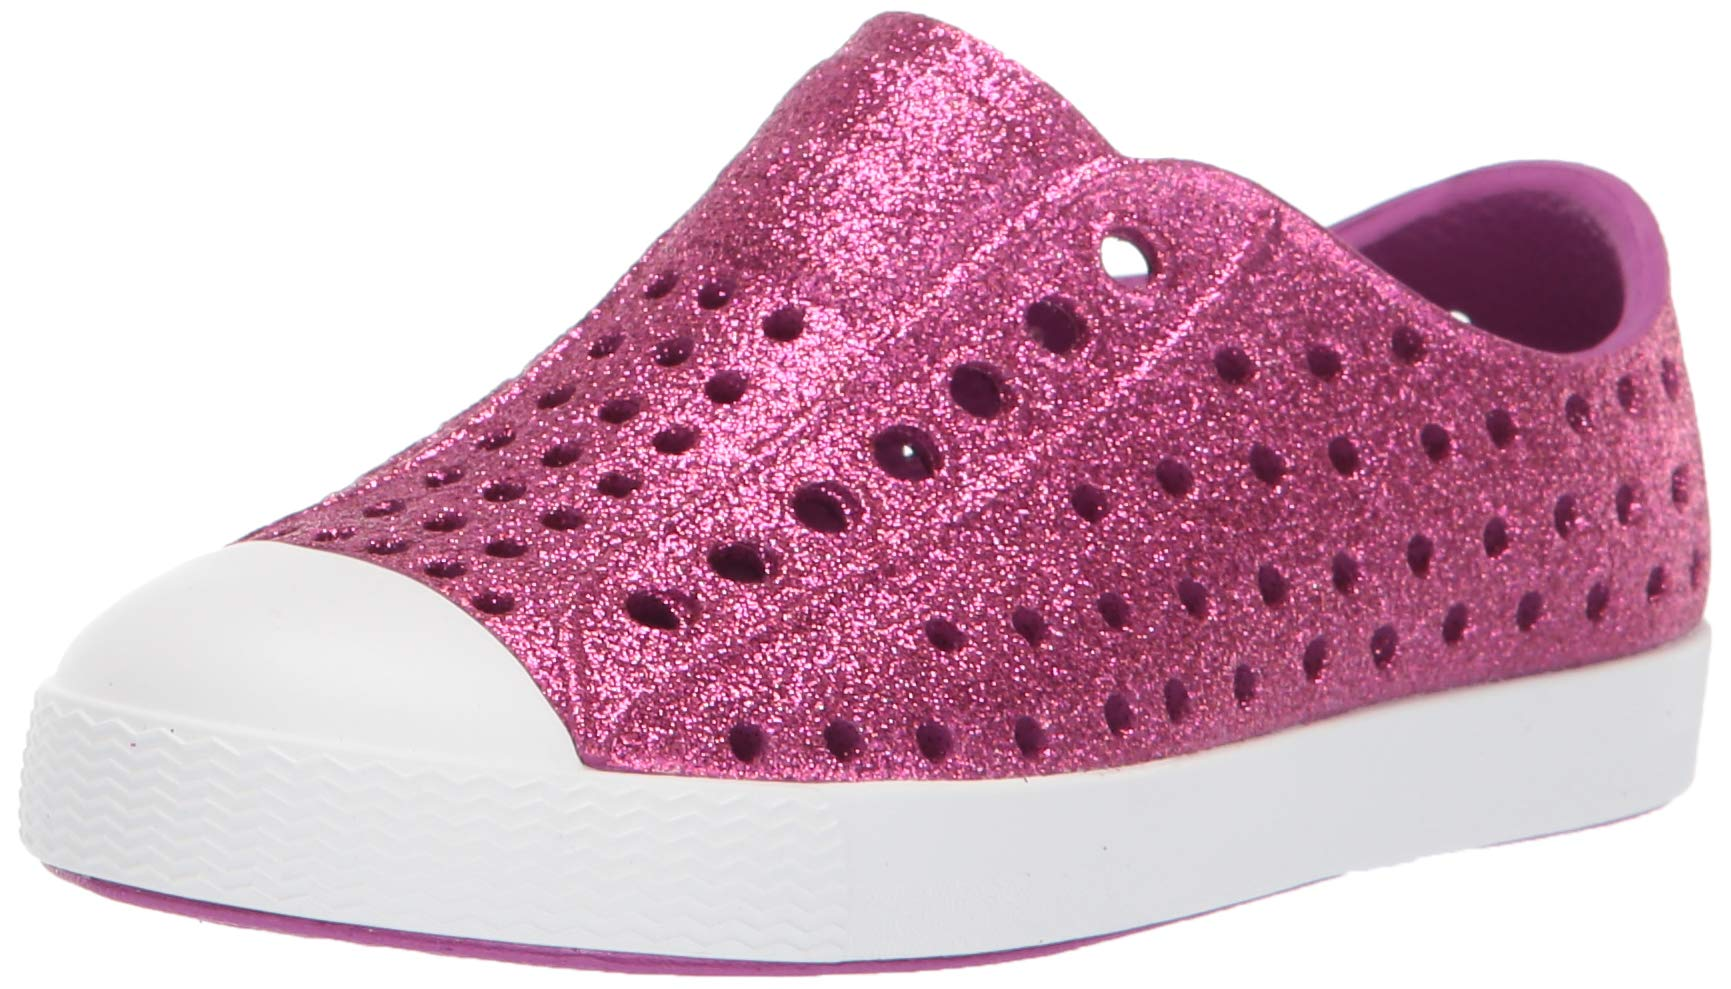 Native Kids Shoes Baby Girl's Jefferson Bling Glitter (Toddler/Little Kid) Origami Purple Bling Glitter/Shell White 4 M US Toddler